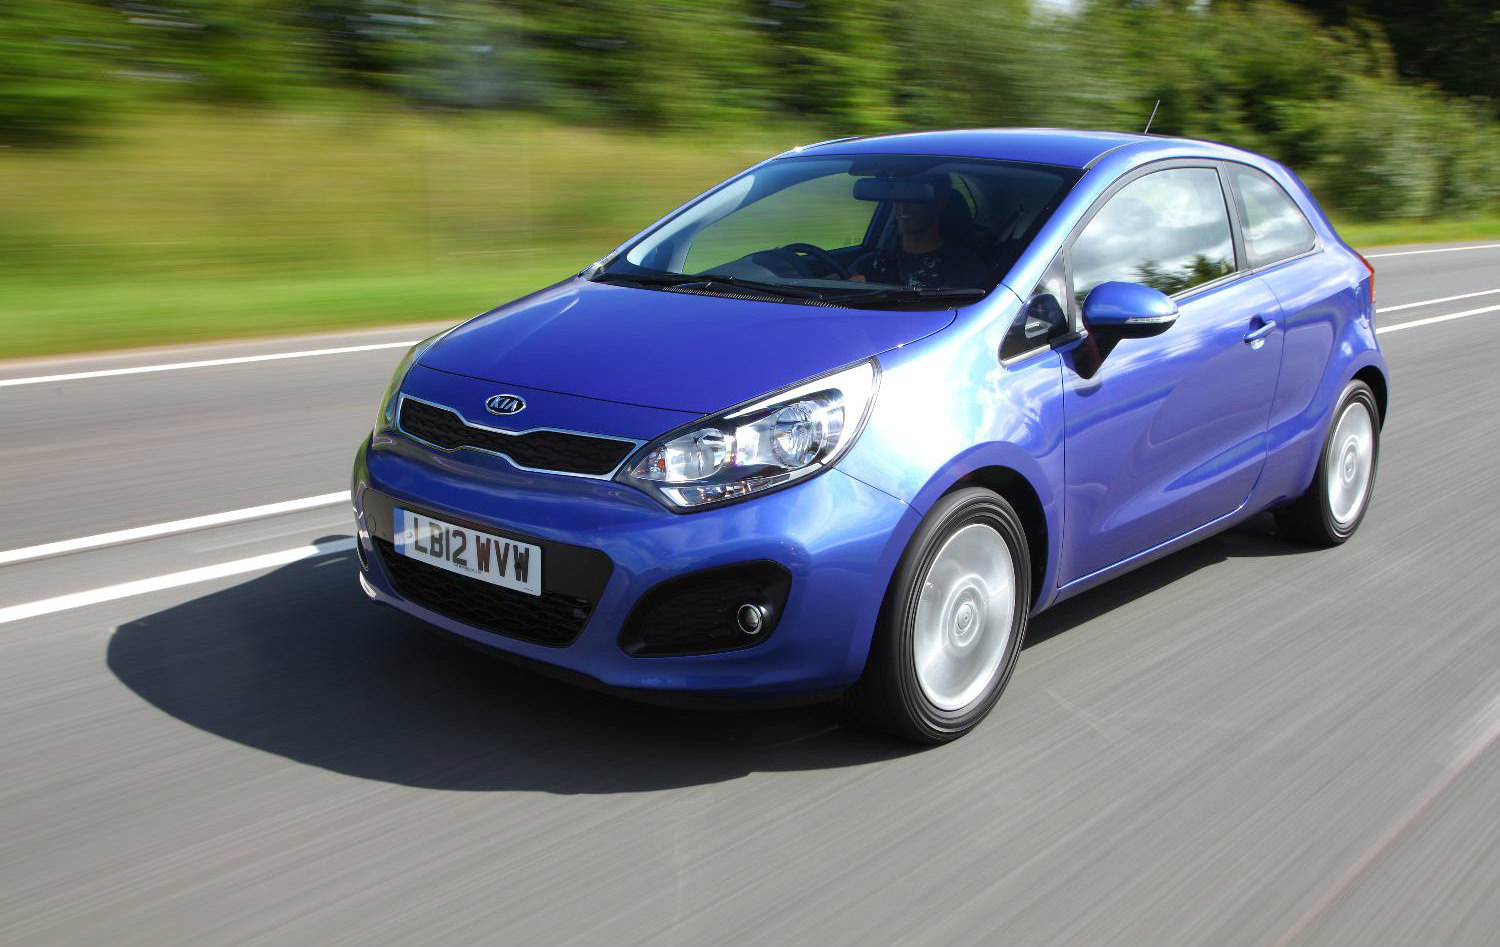 image of a blue kia rio car exterior